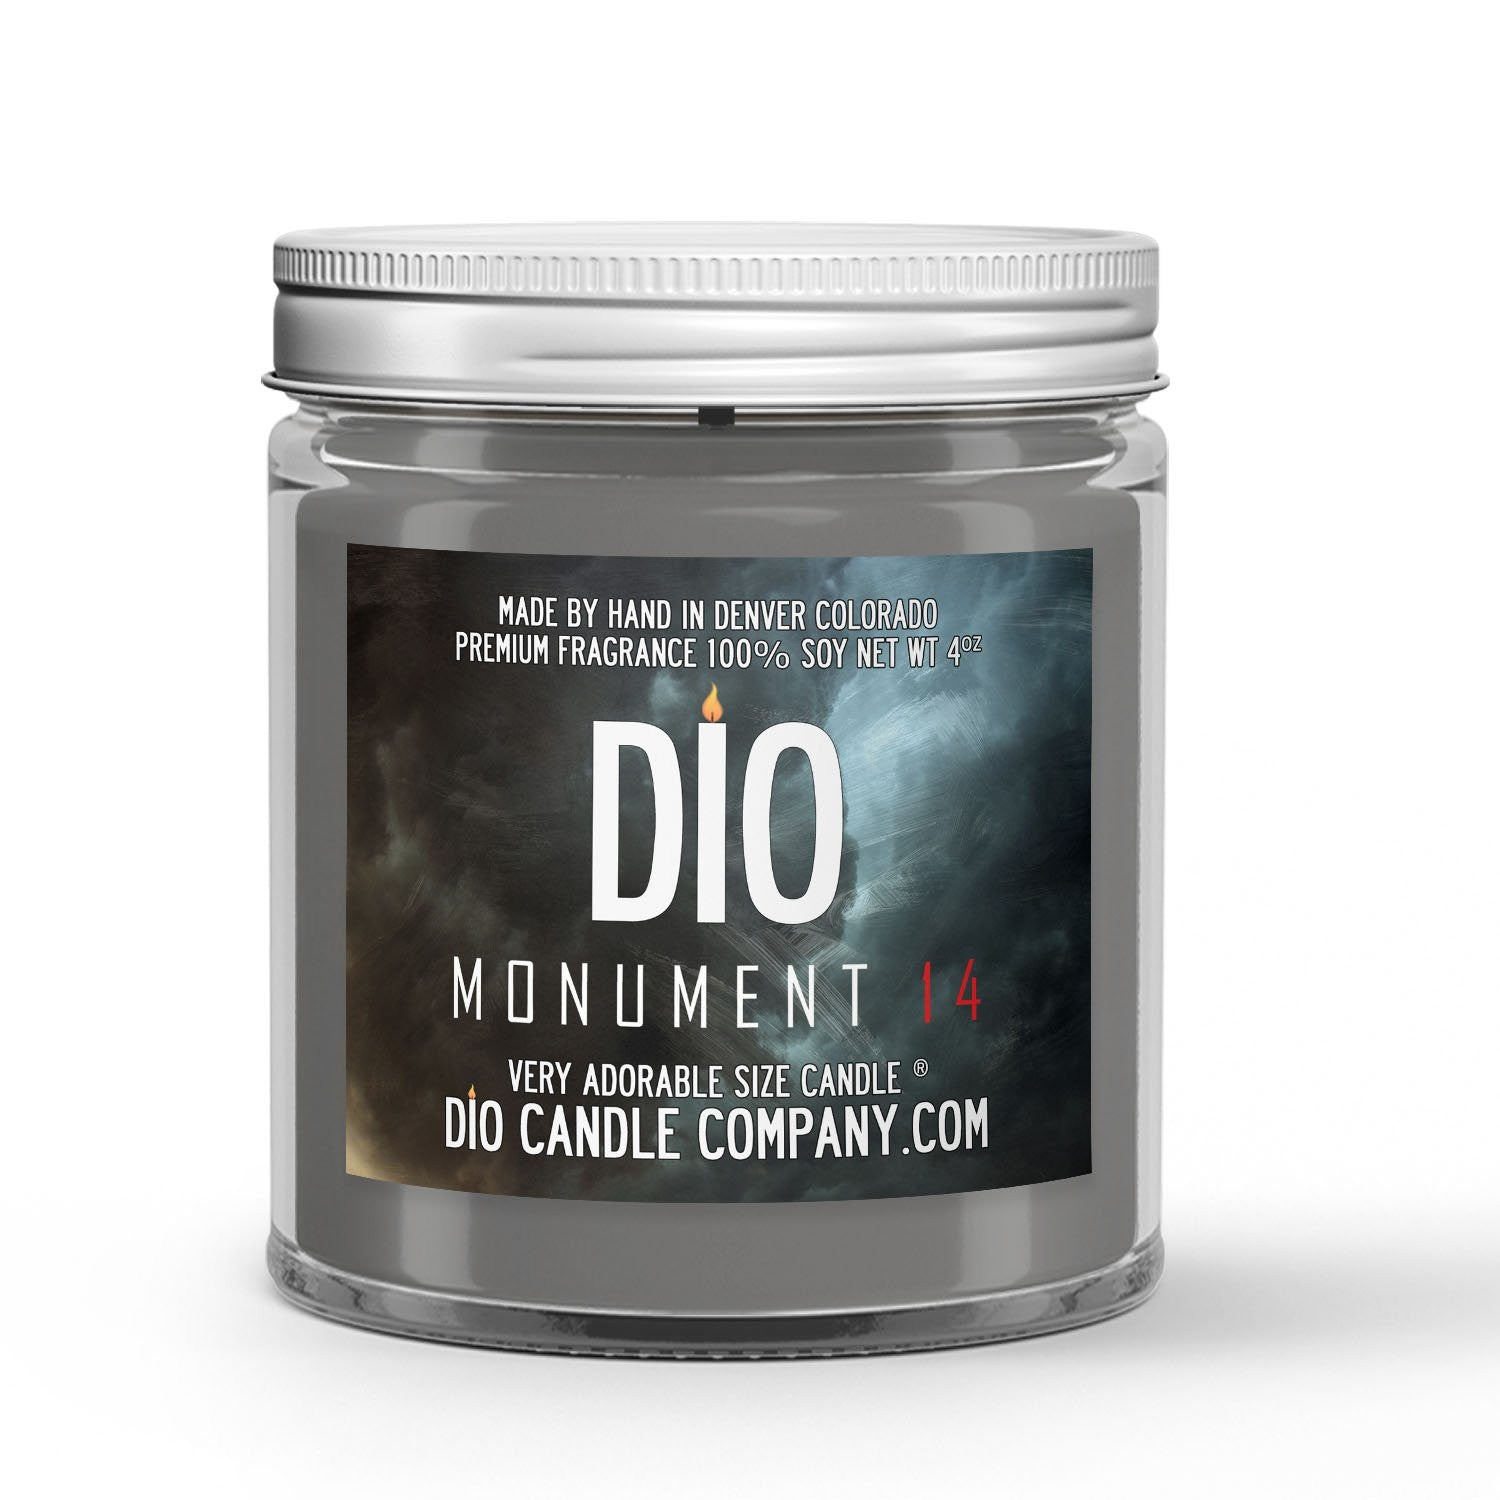 Monument 14 Candle - Burnt Twinkies - Coffee - Fire - 4oz Very Adorable Size Candle® - Dio Candle Company